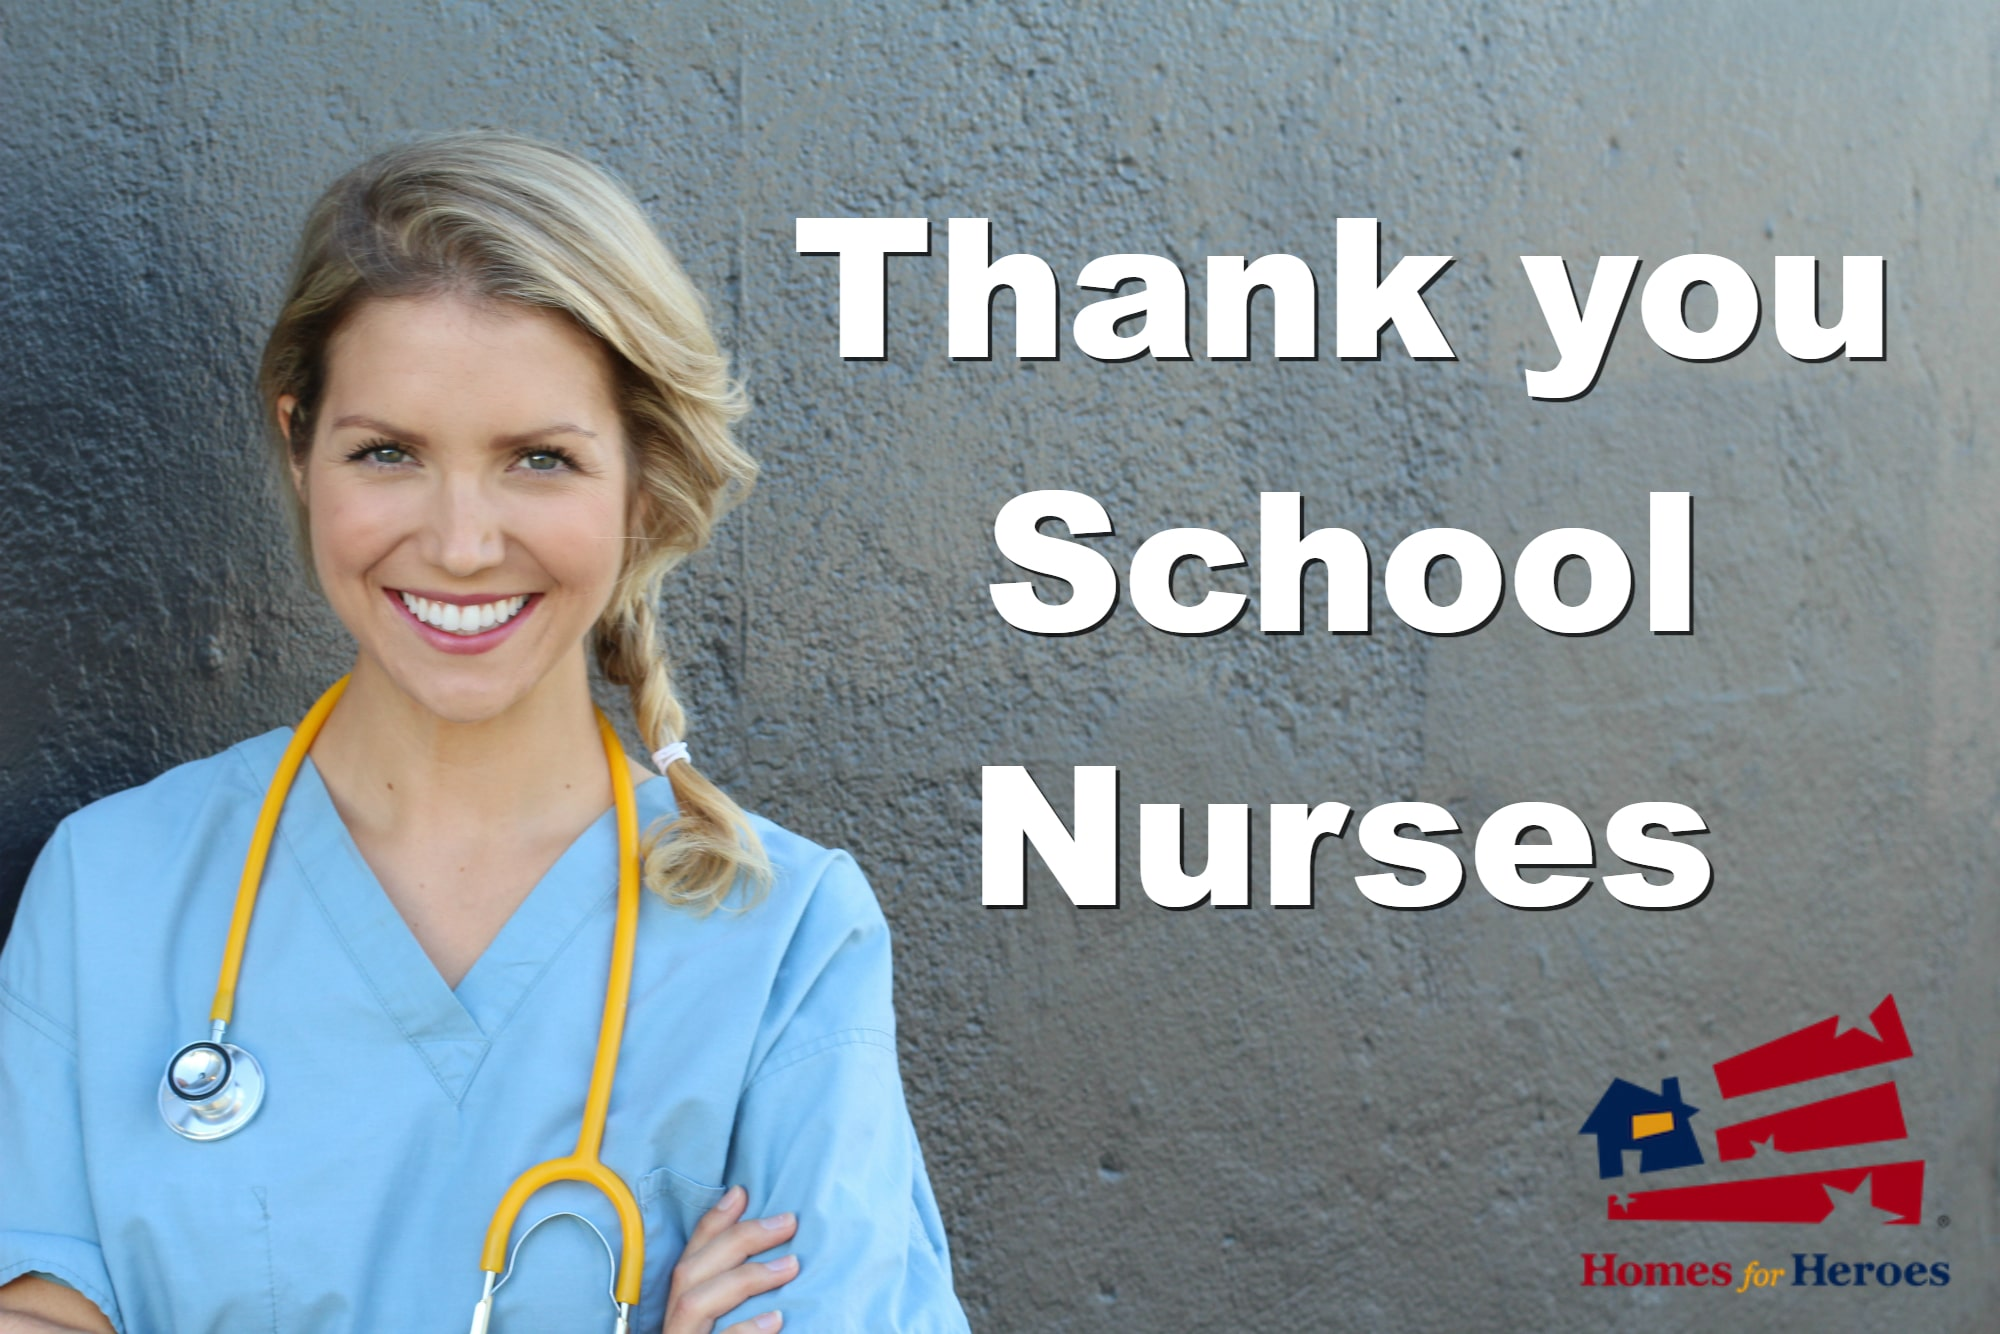 National School Nurses Day